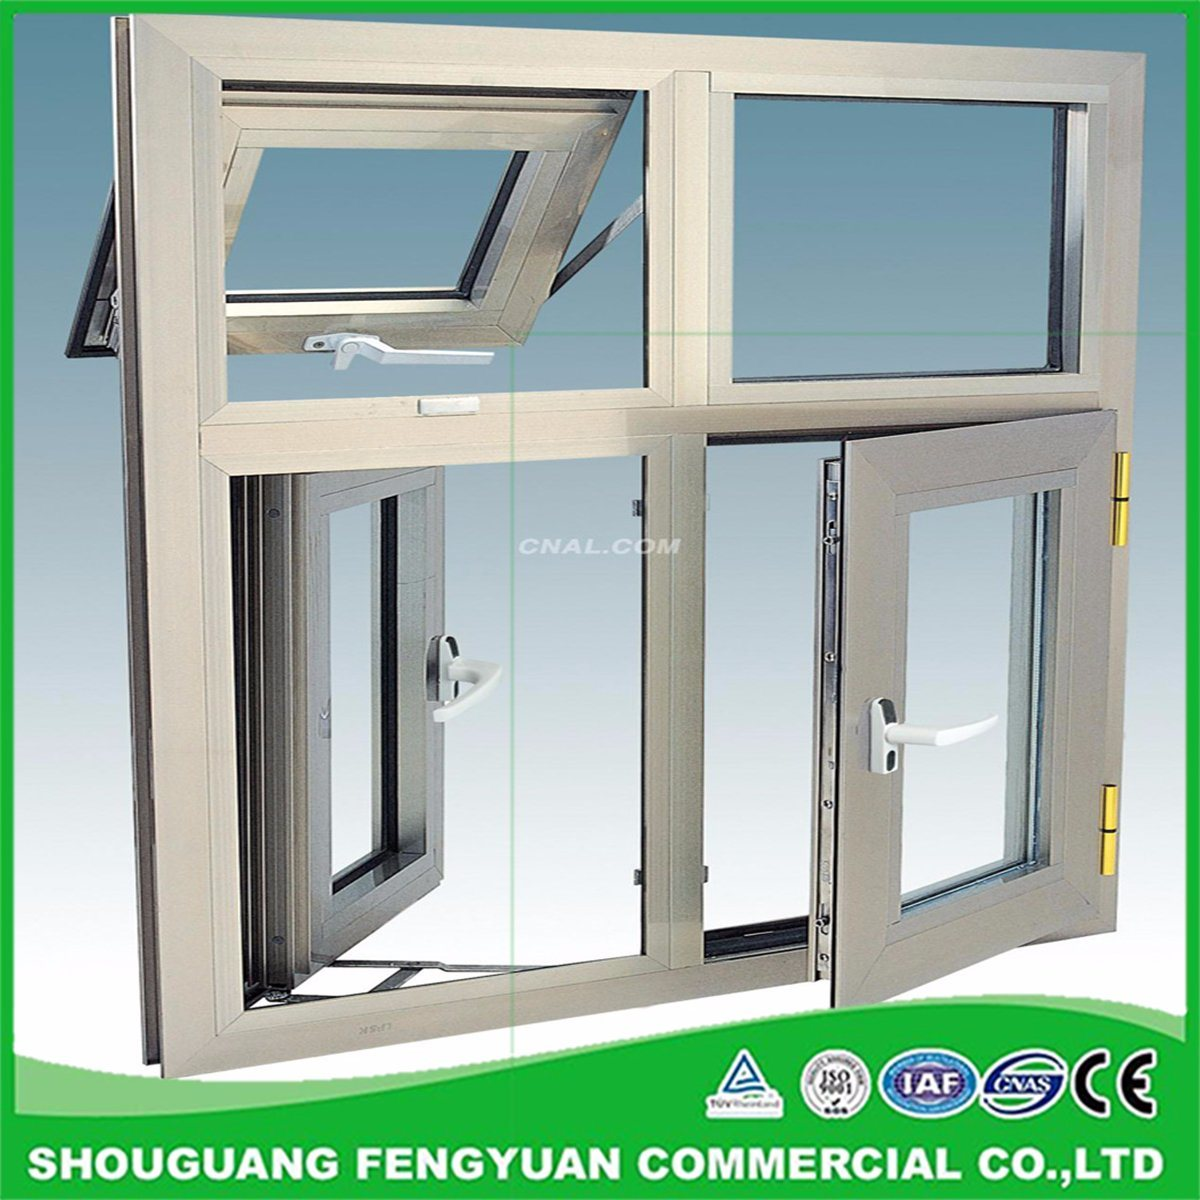 Metal-Plastic Windows Which Are Better